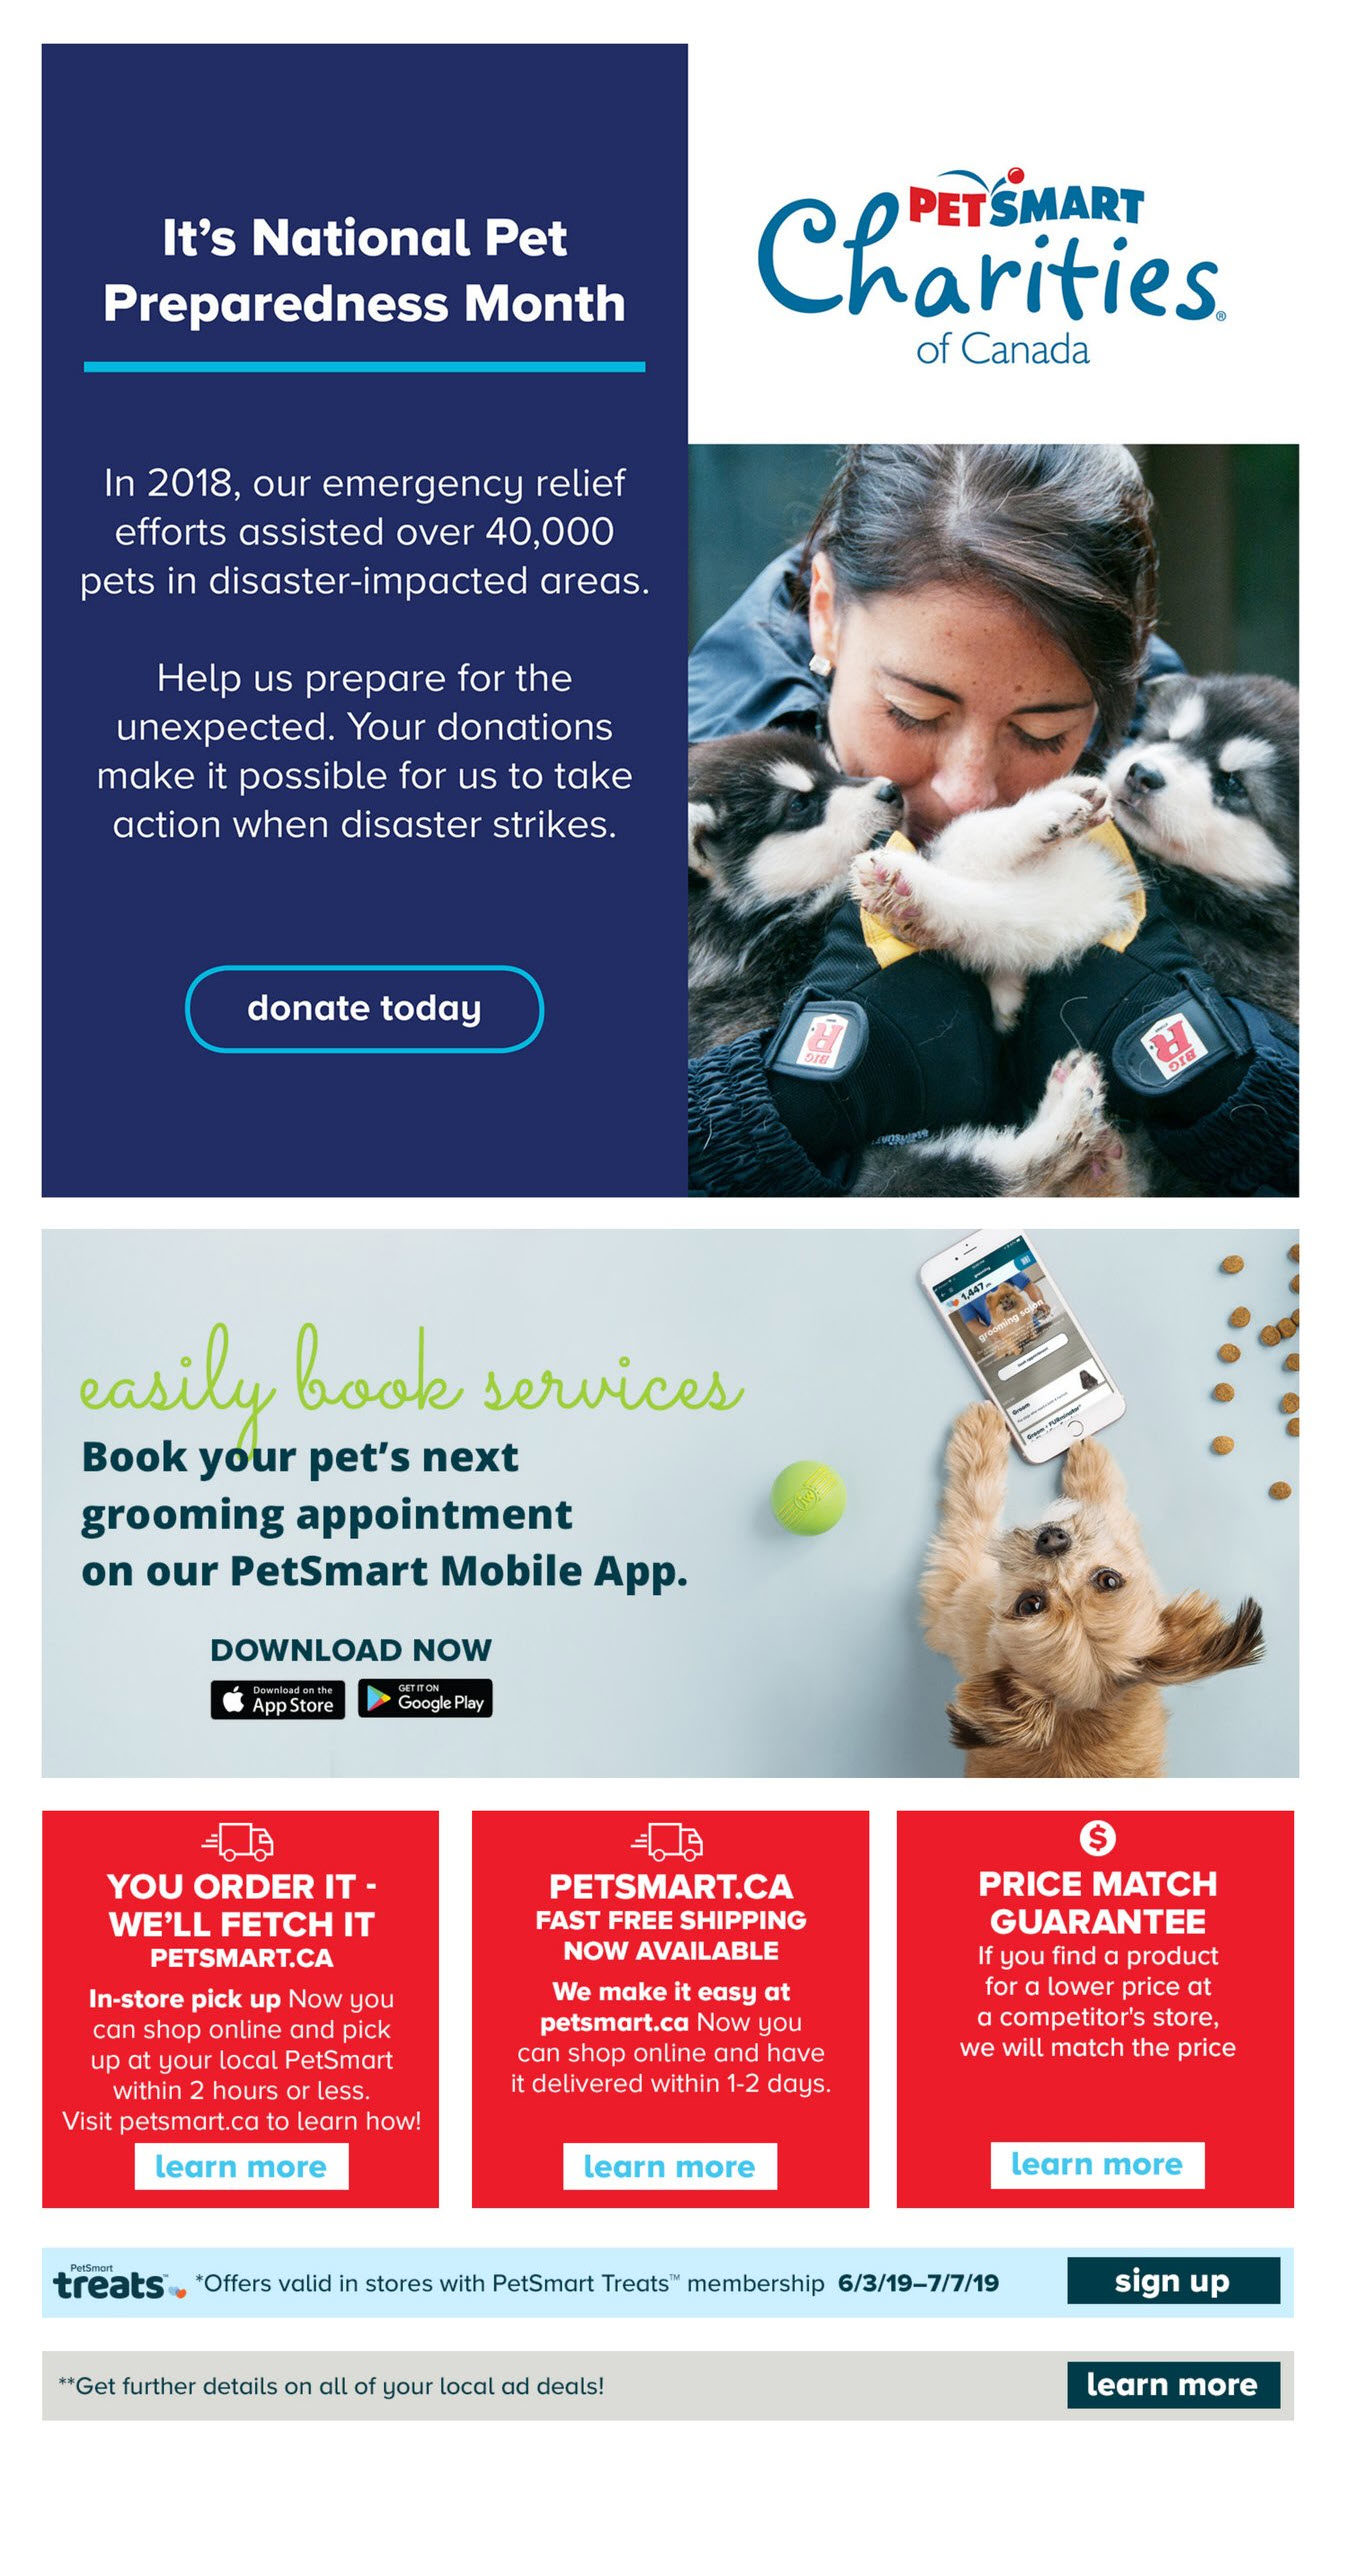 PetSmart Weekly Flyer - For The Love of Pets - Big Brands